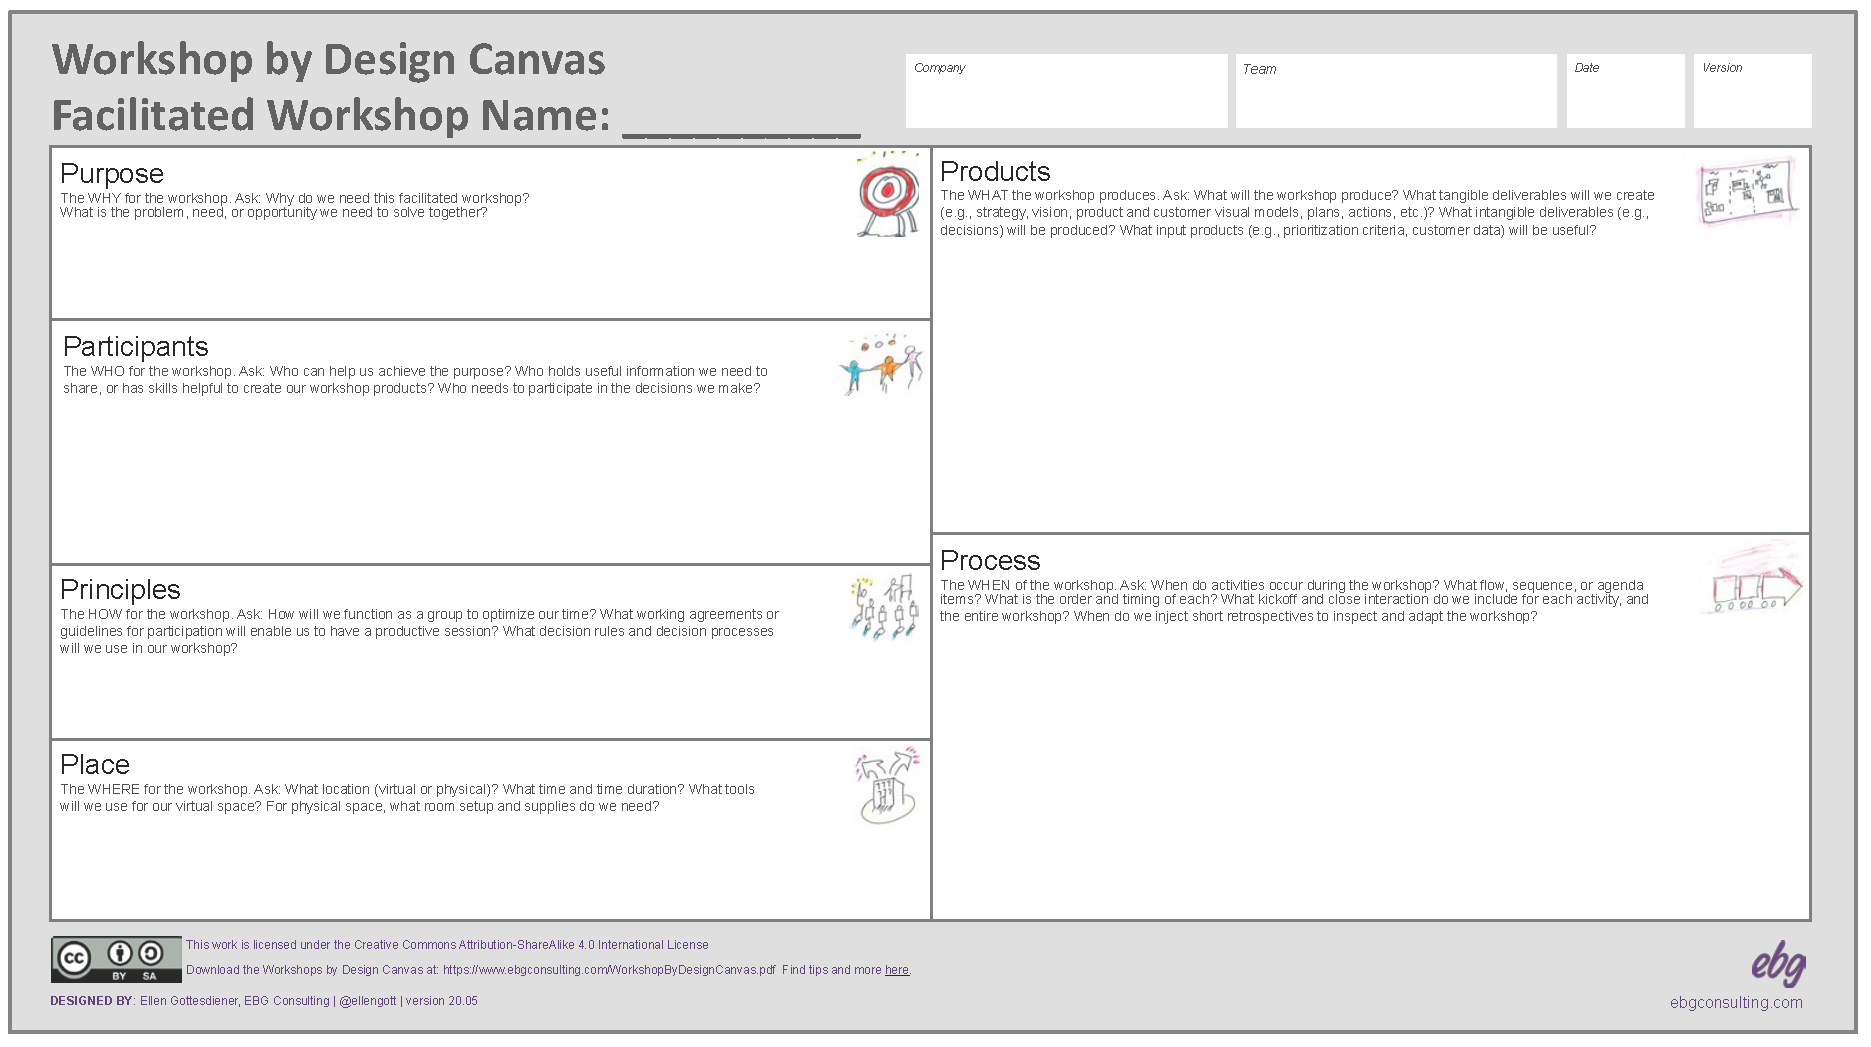 Source: EBG Consulting | Workshop by Design Canvas | Download the Workshop by Design Canvas